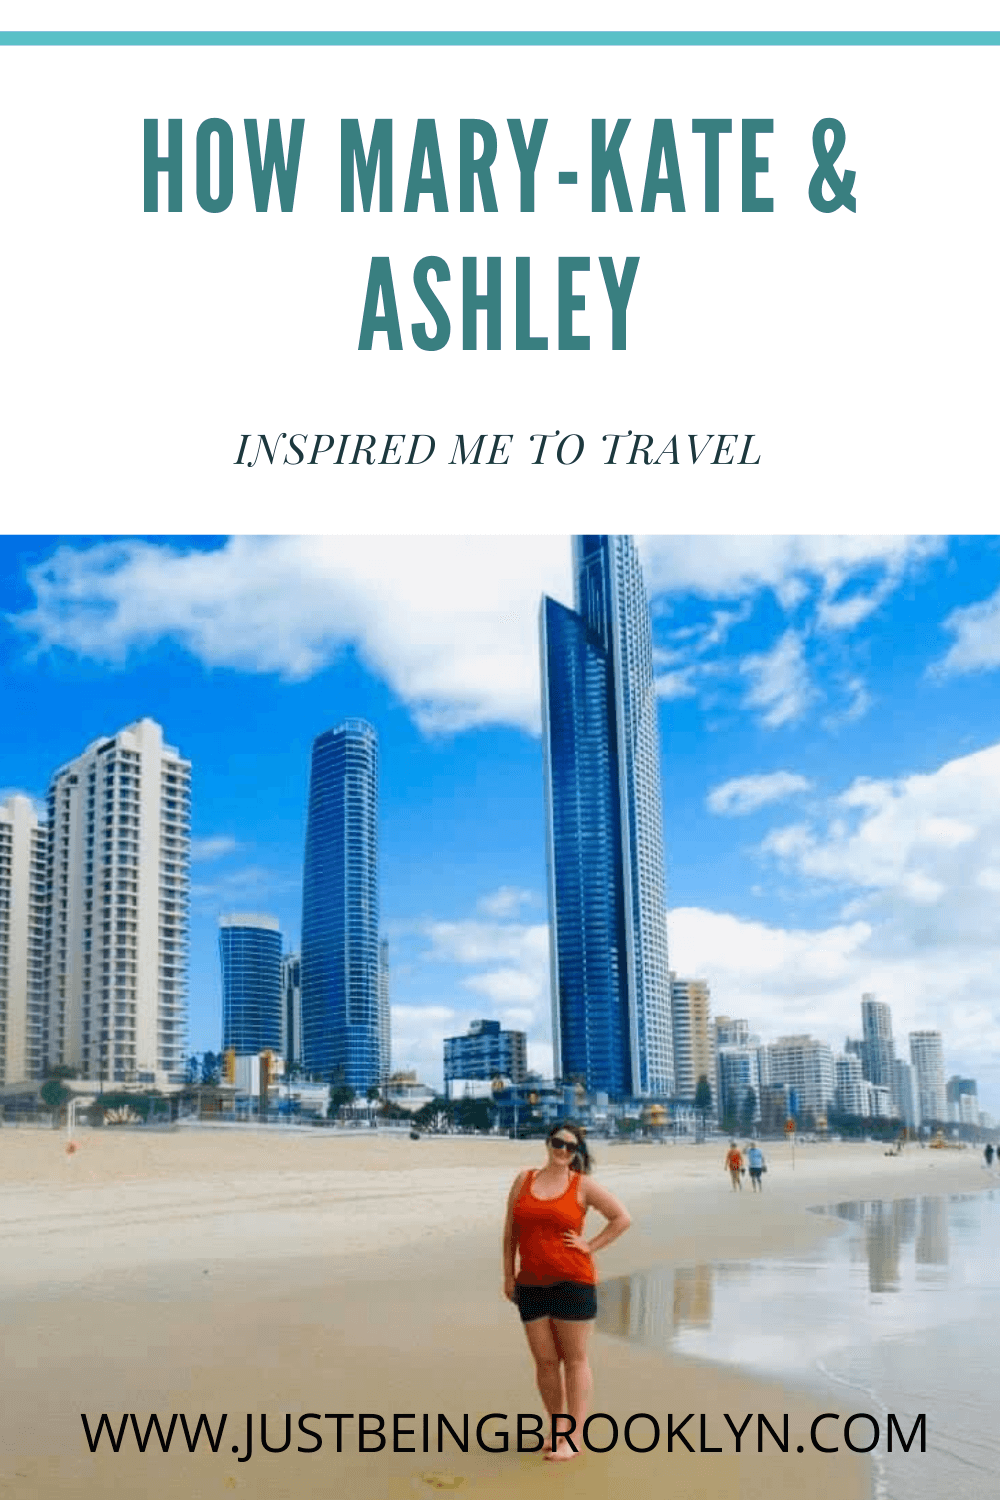 How Mary-Kate & Ashley Inspired Me To Travel Pinterest Pin